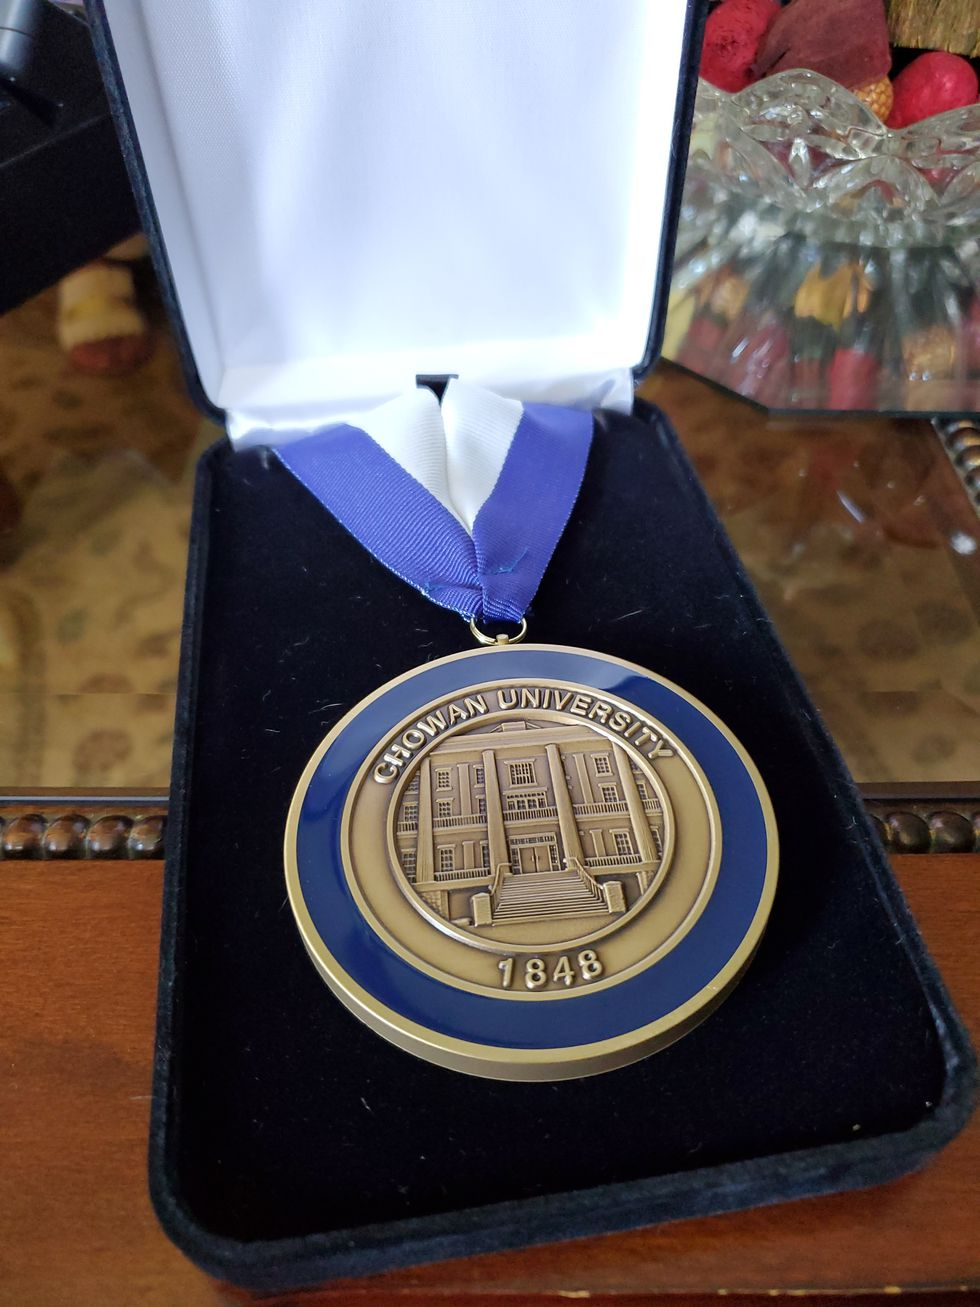 The Spirit of Chowan Award was given to a teacher Monday in Murfreesboro.